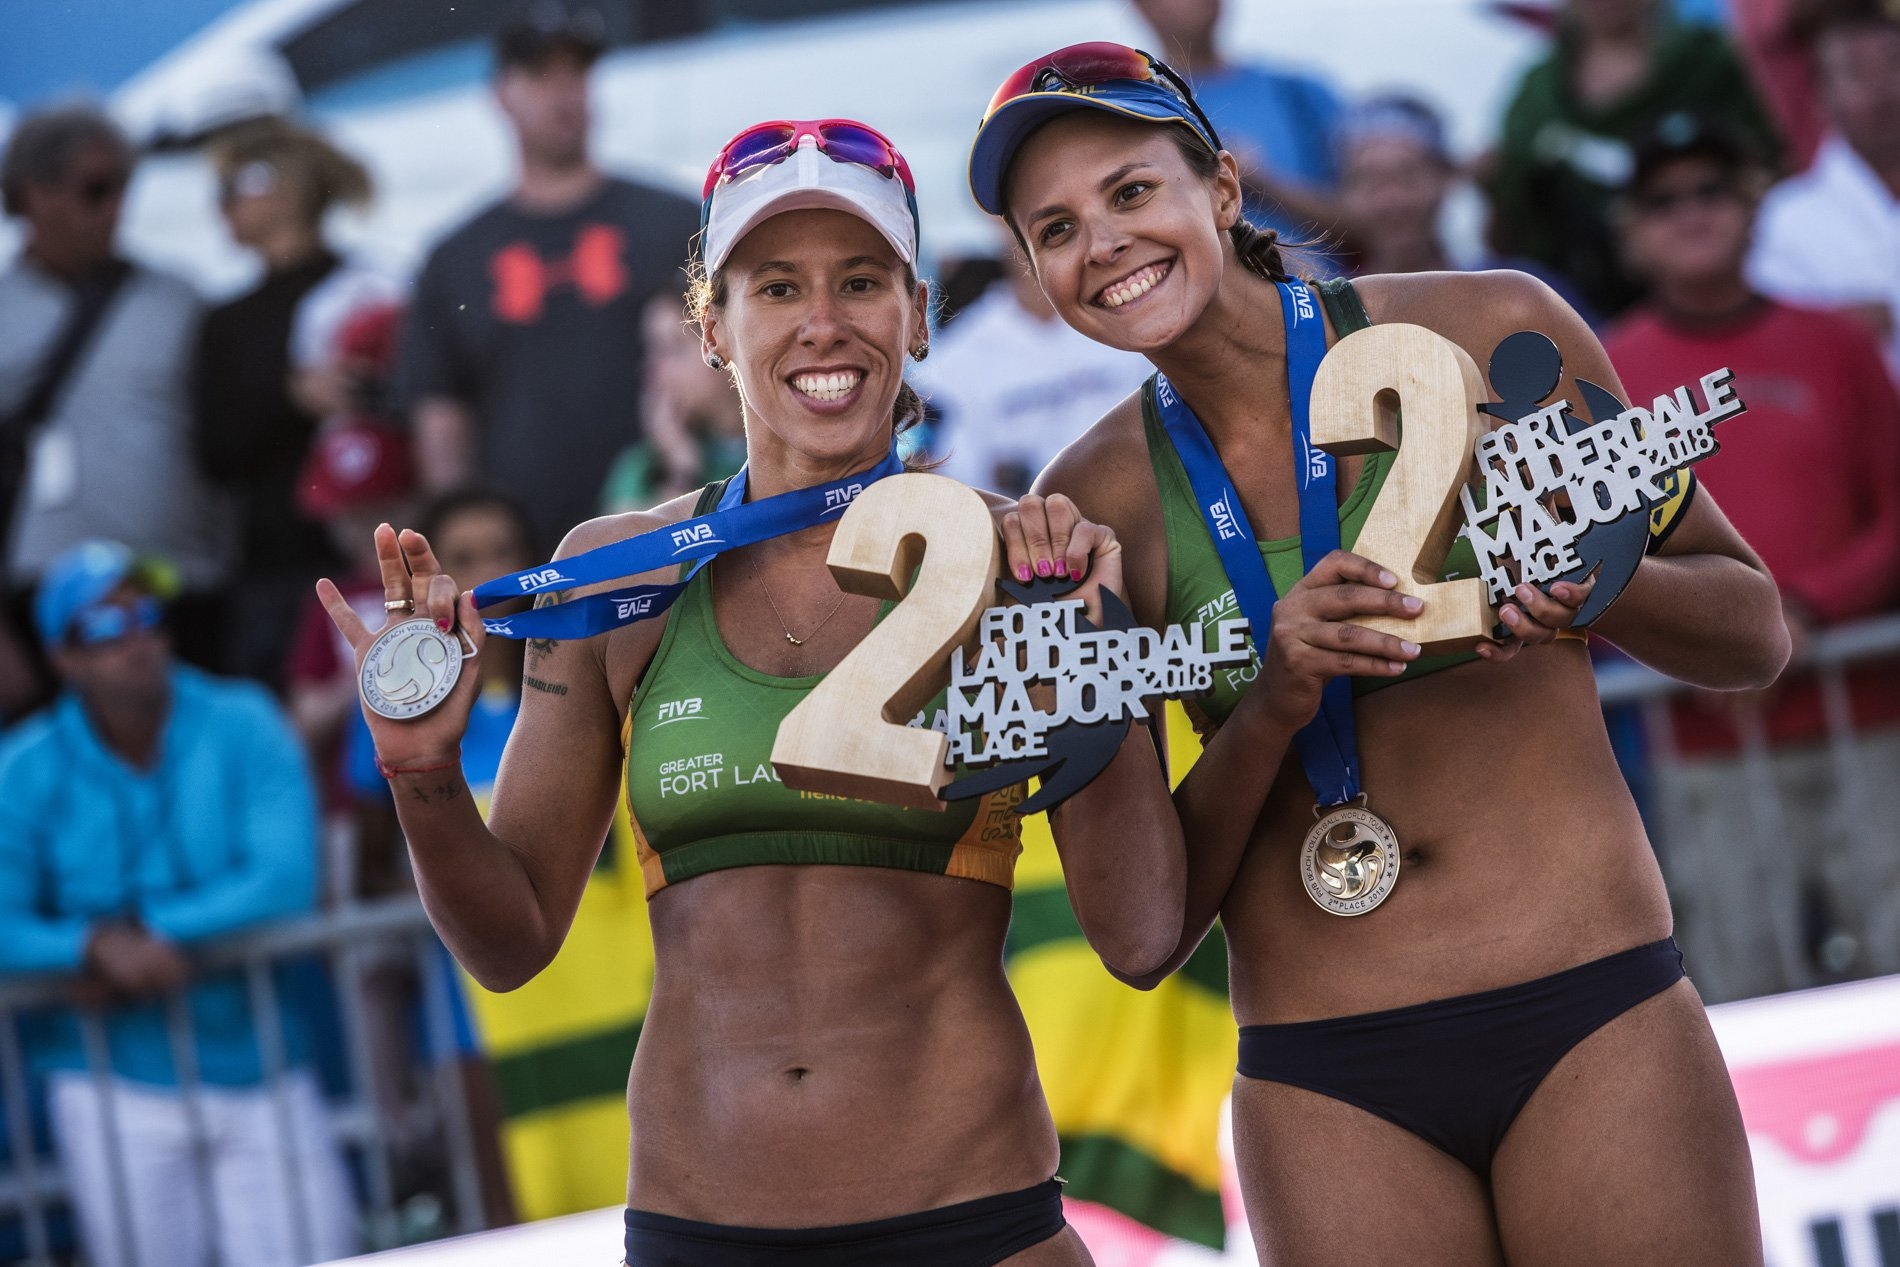 Taiana and Carol Horta will be together in the World Tour tournament in China in April